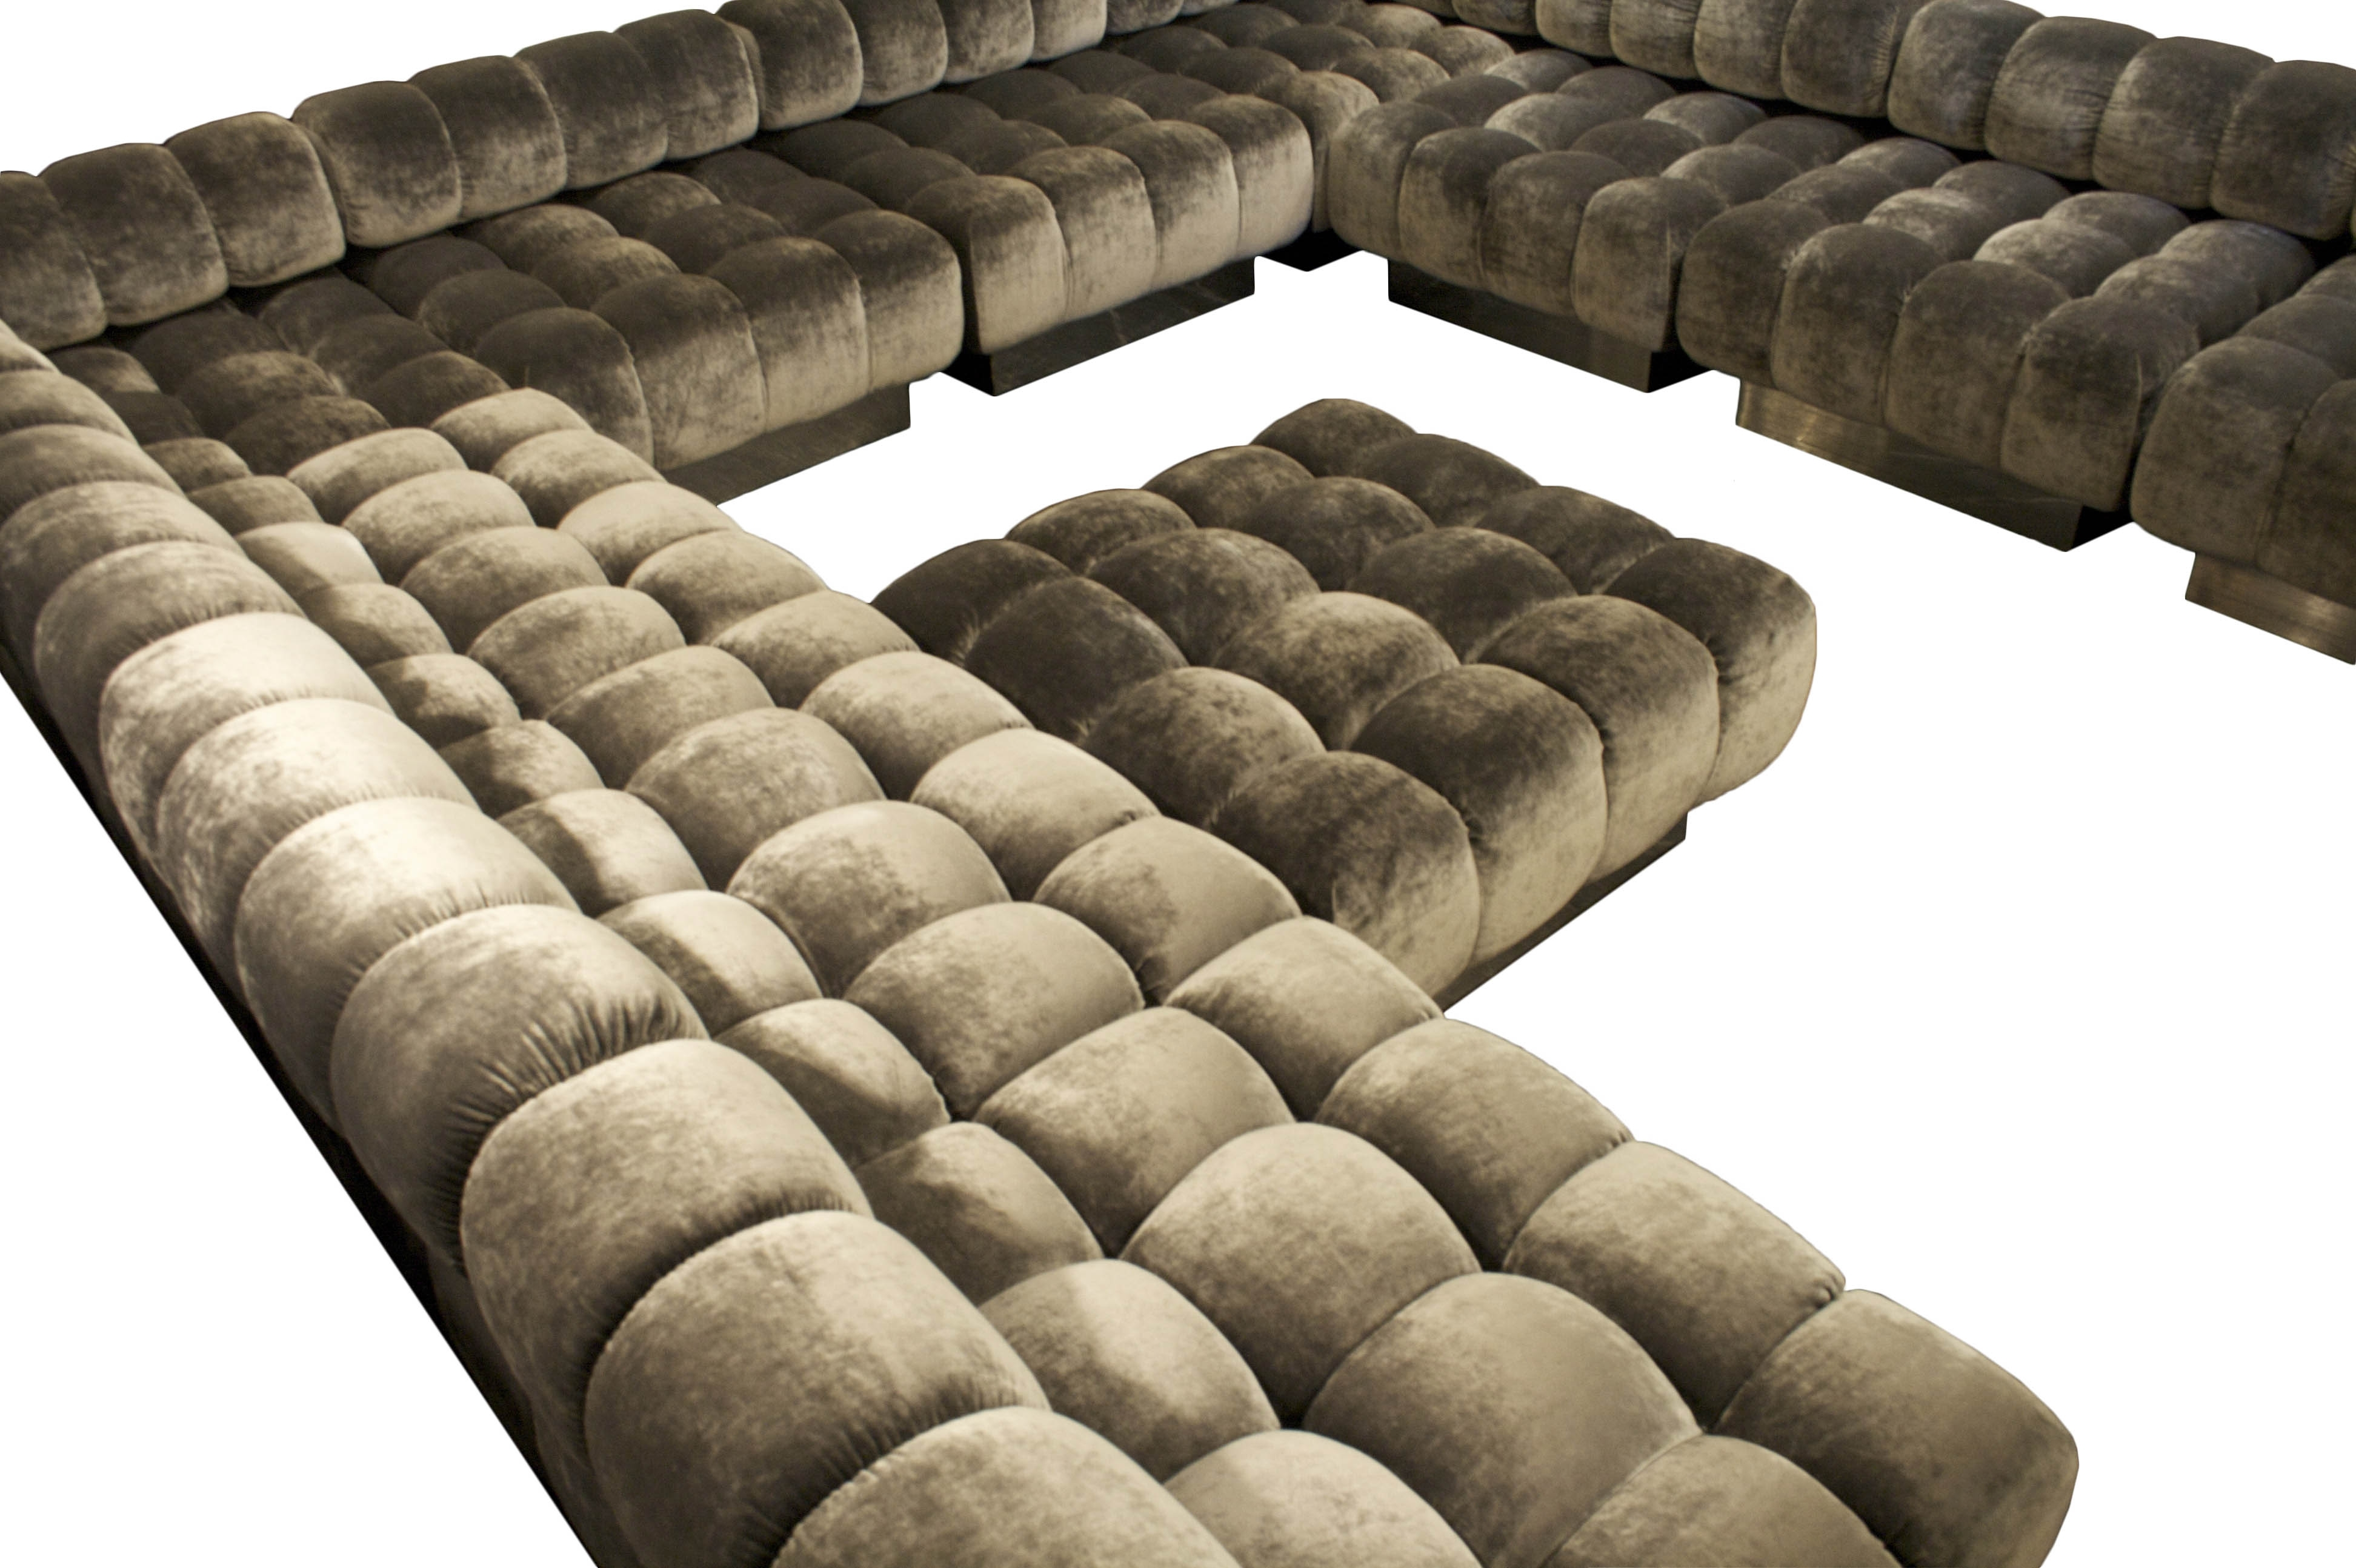 Customizable Sectional Sofas With Regard To Best And Newest Inspirational L Shaped White Faux Leather Tufted Sectional Sofas (View 6 of 15)